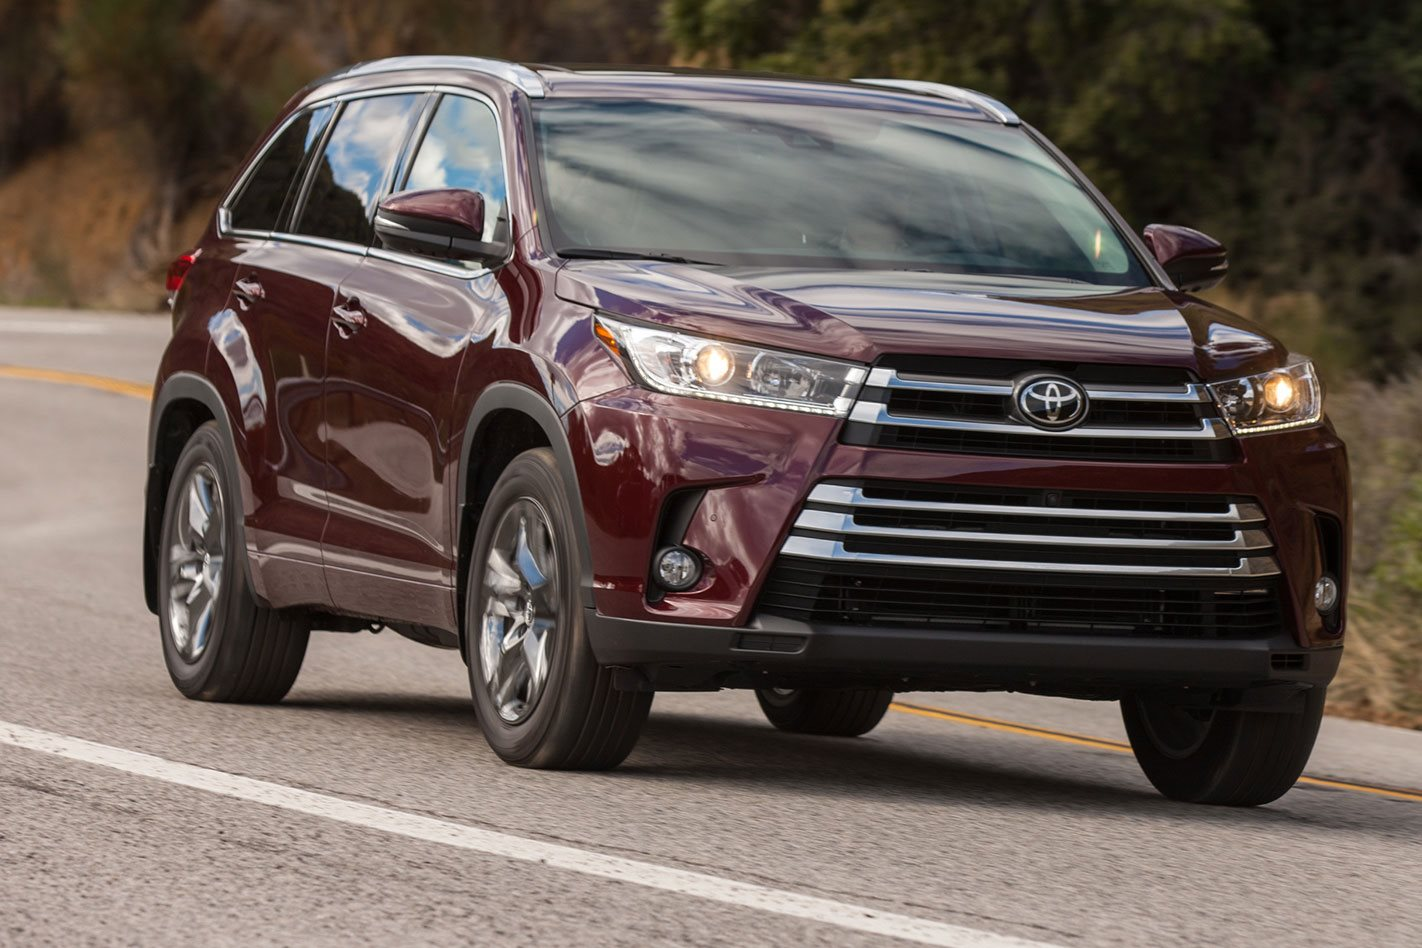 2018 Toyota Kluger Range Review